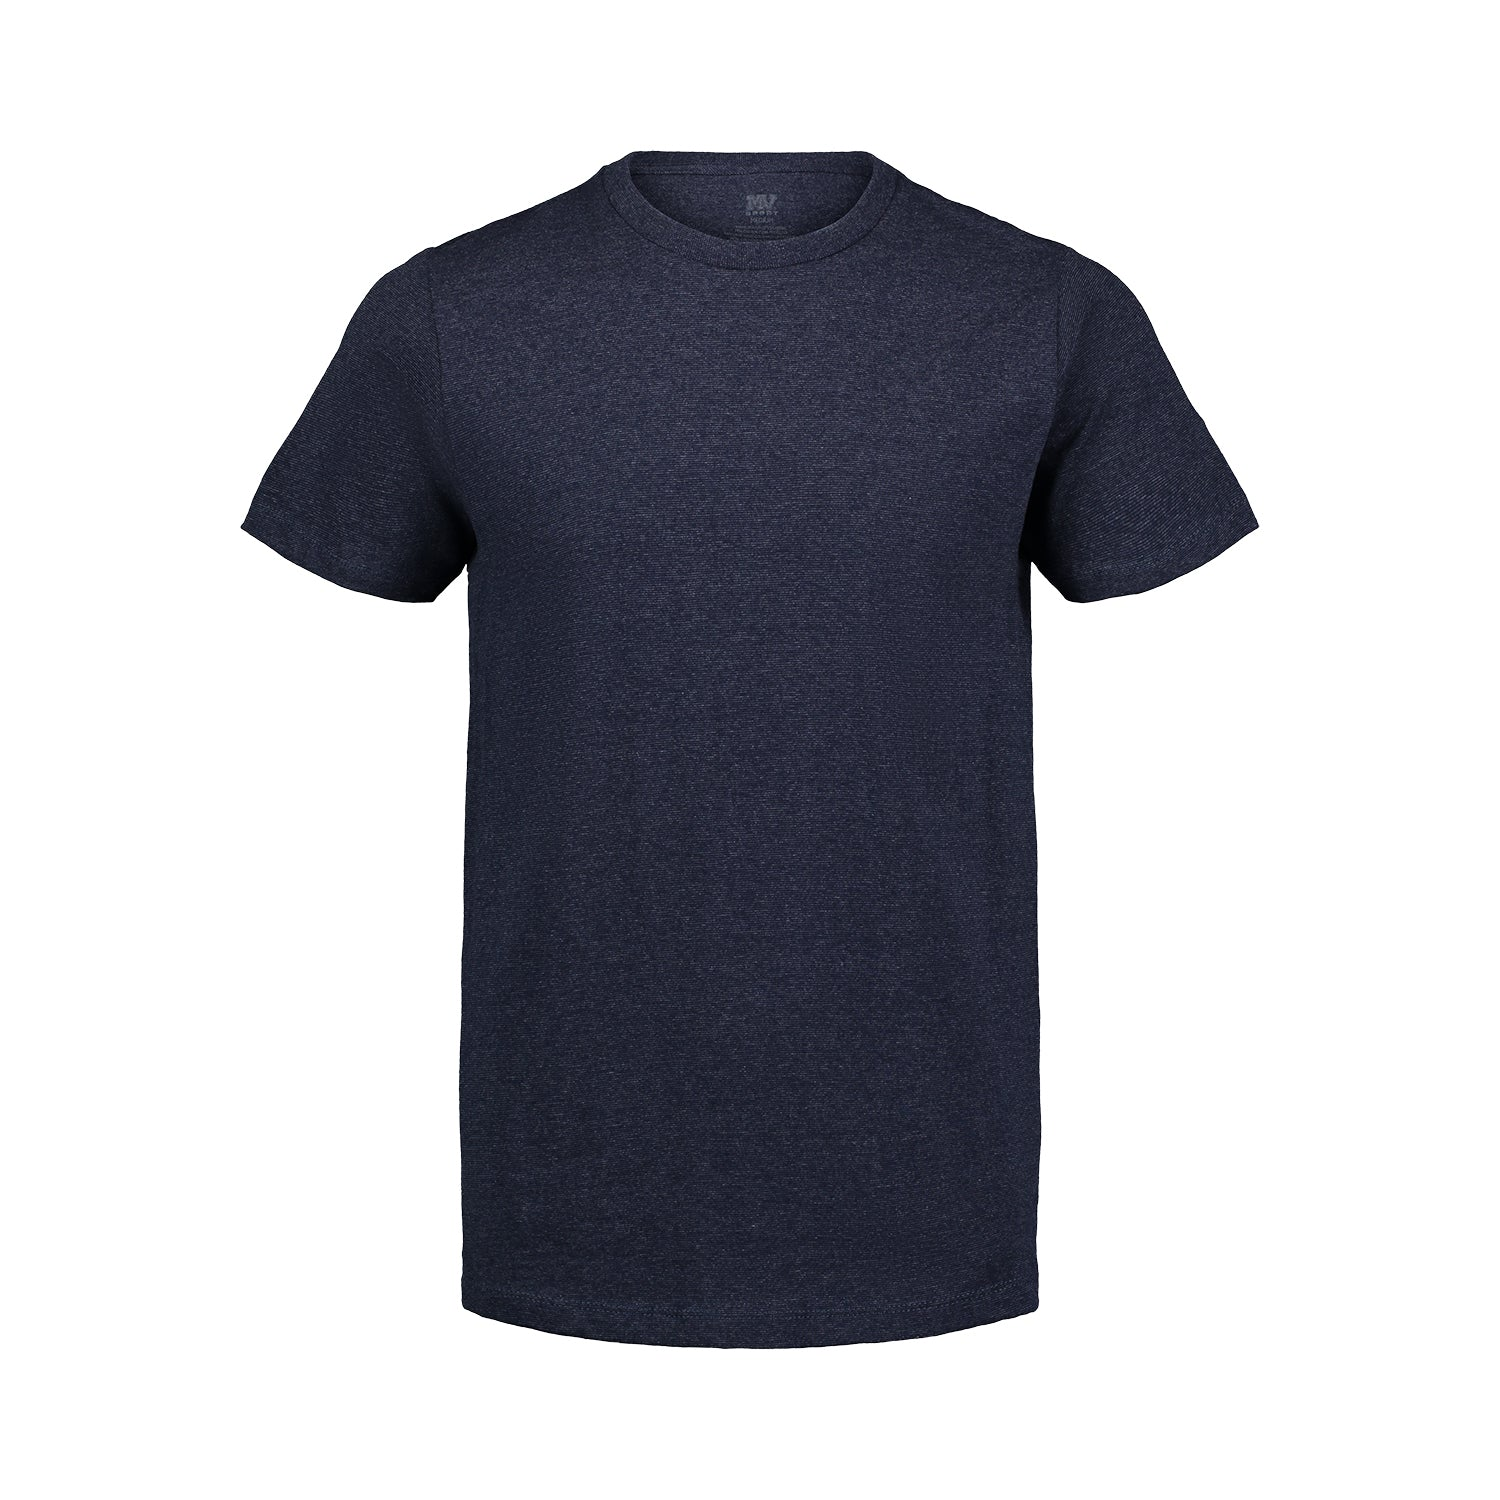 18427Y - Youth James TriHeather Tee